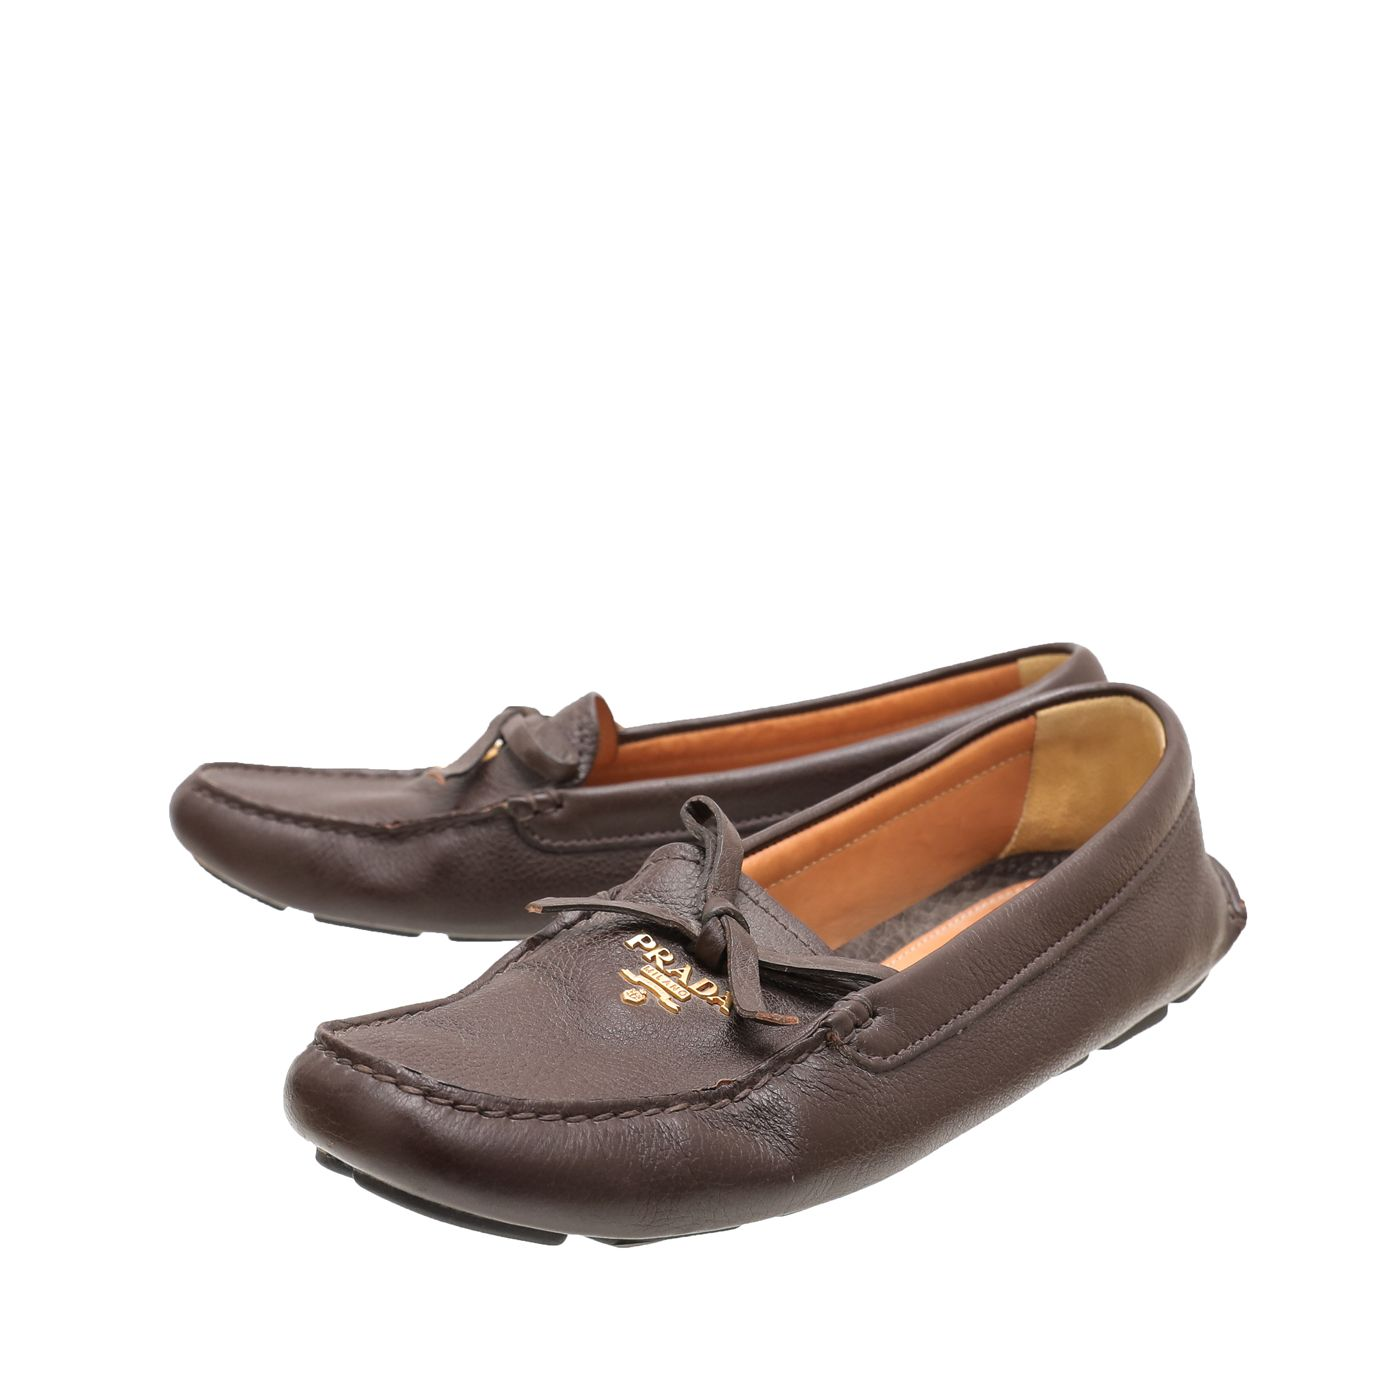 Prada Brown Bow Detail Moccasin Loafers 37